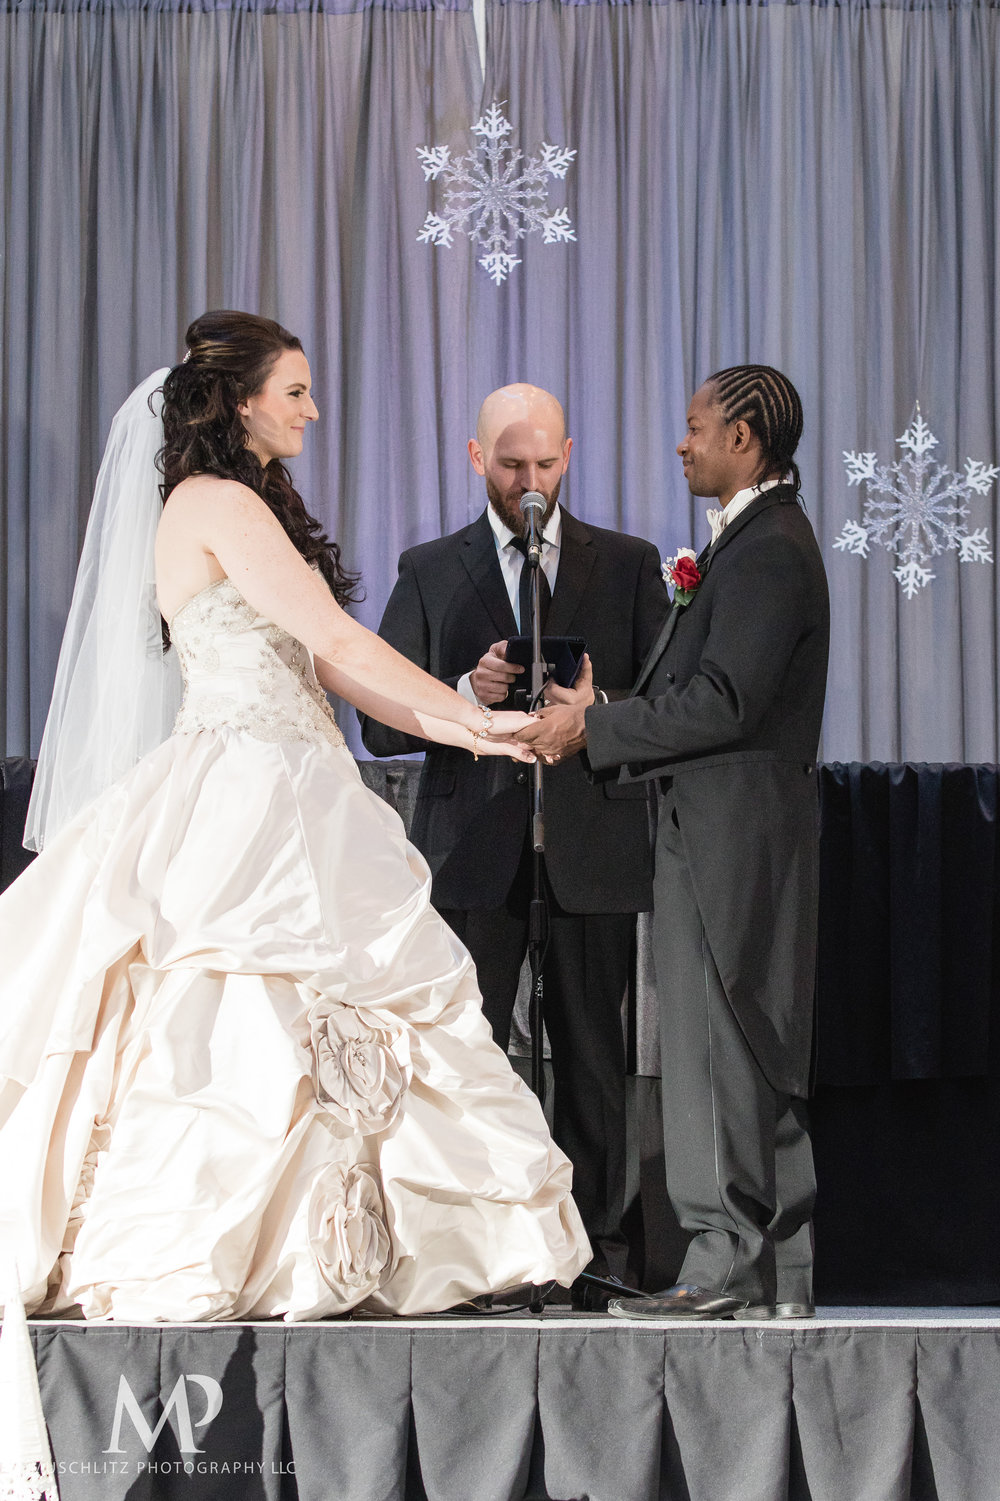 greater-columbus-convention-center-winter-wedding-ceremony-reception-portraits-columbus-ohio-muschlitz-photography-029.JPG